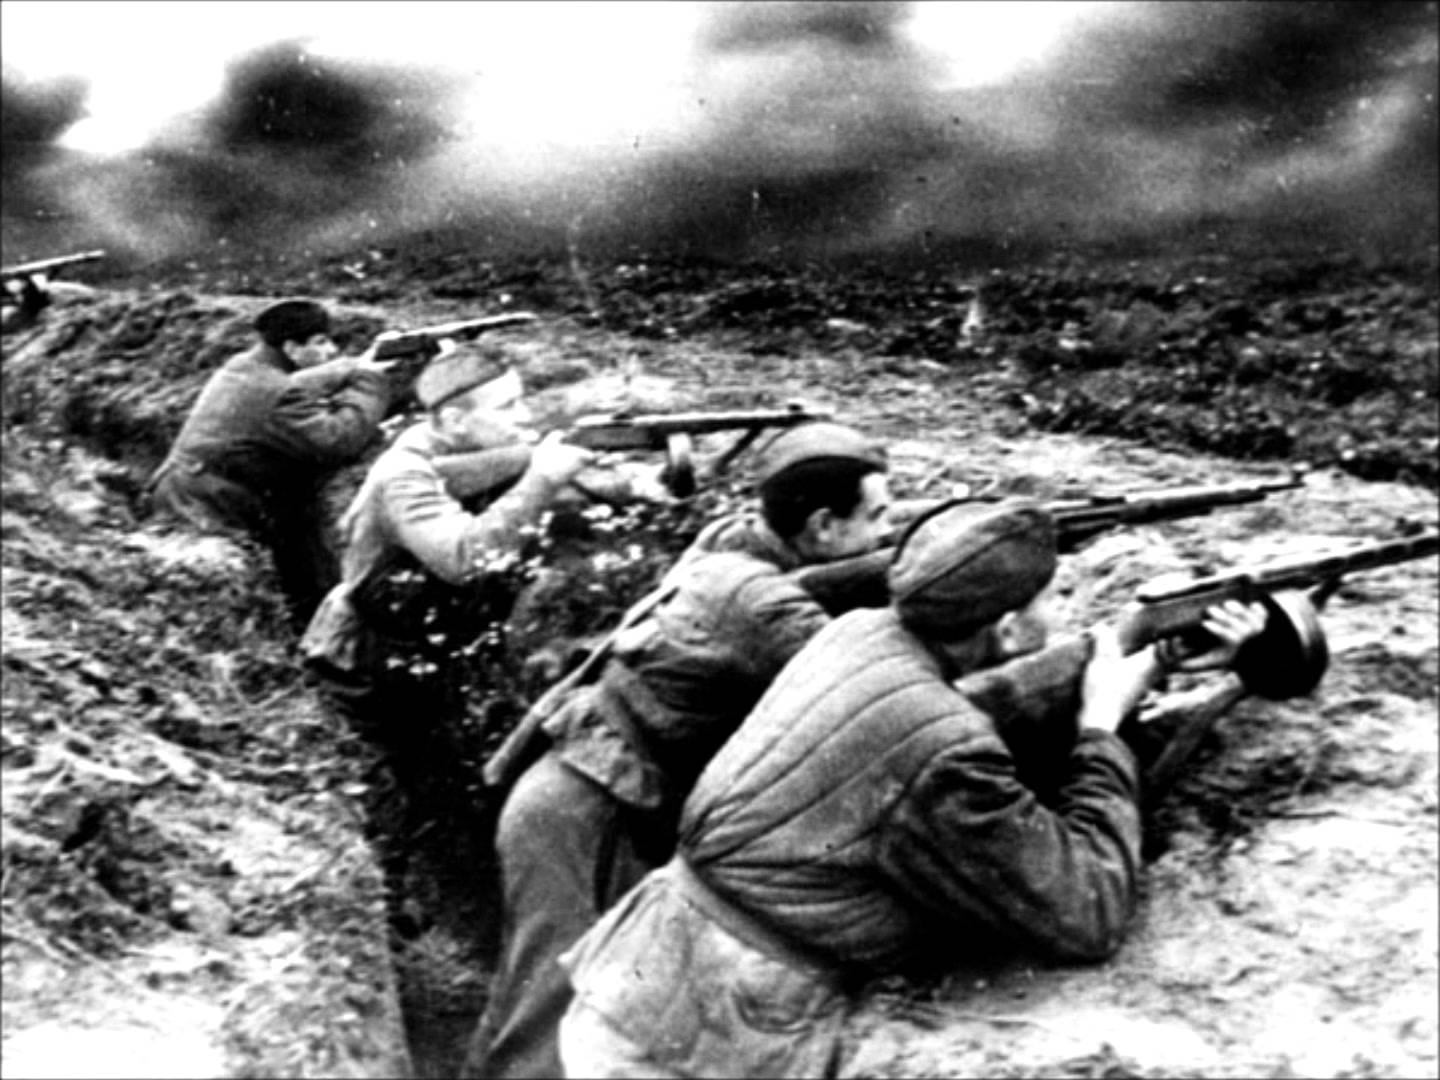 Combat High – A Brief But Sobering History of Drug Use in Wartime